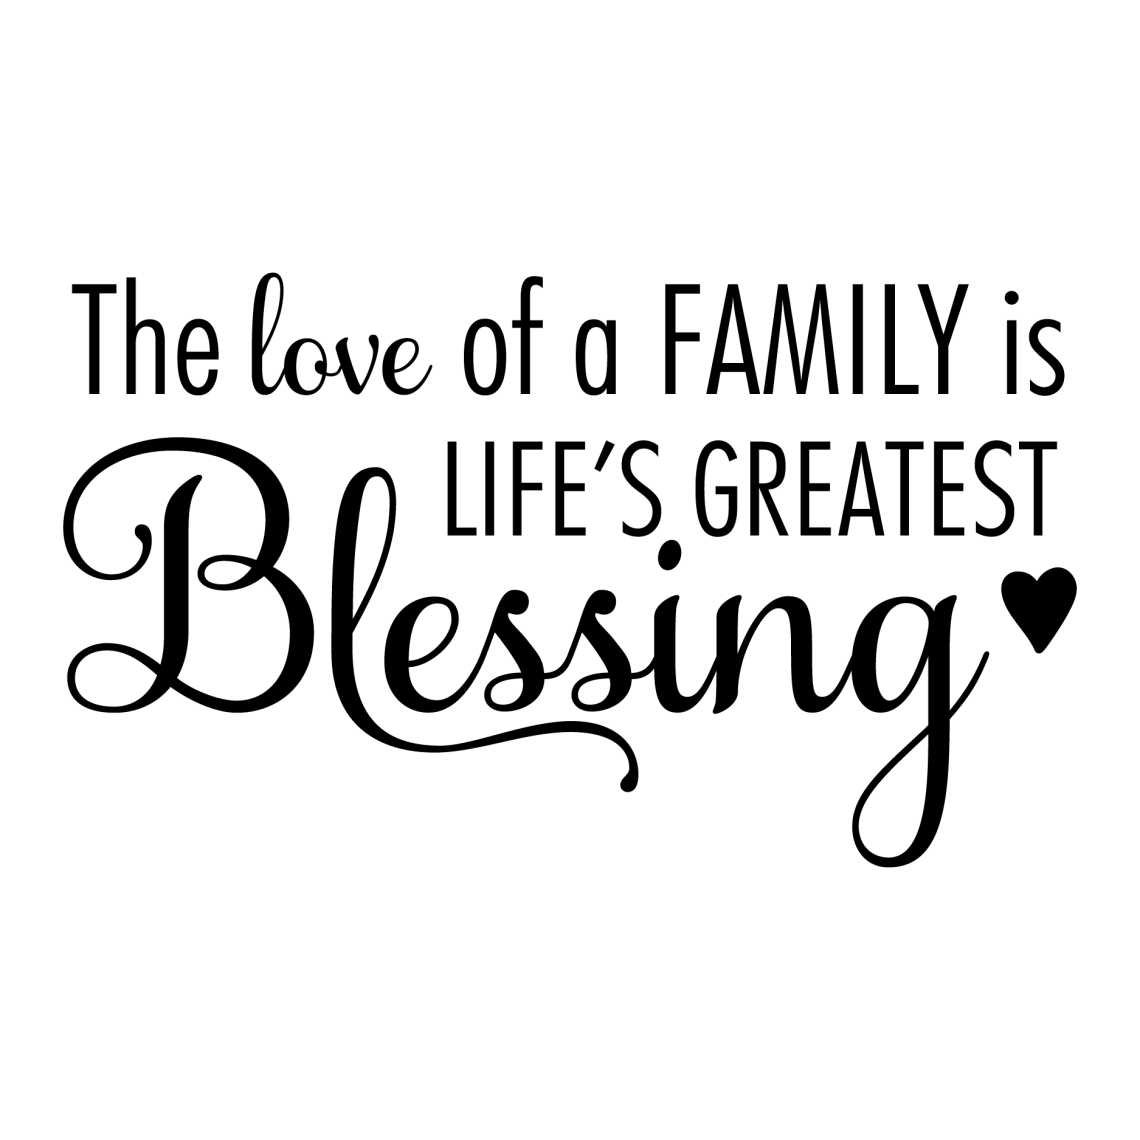 Download The Love of A Family Wall Quotes™ Decal | WallQuotes.com